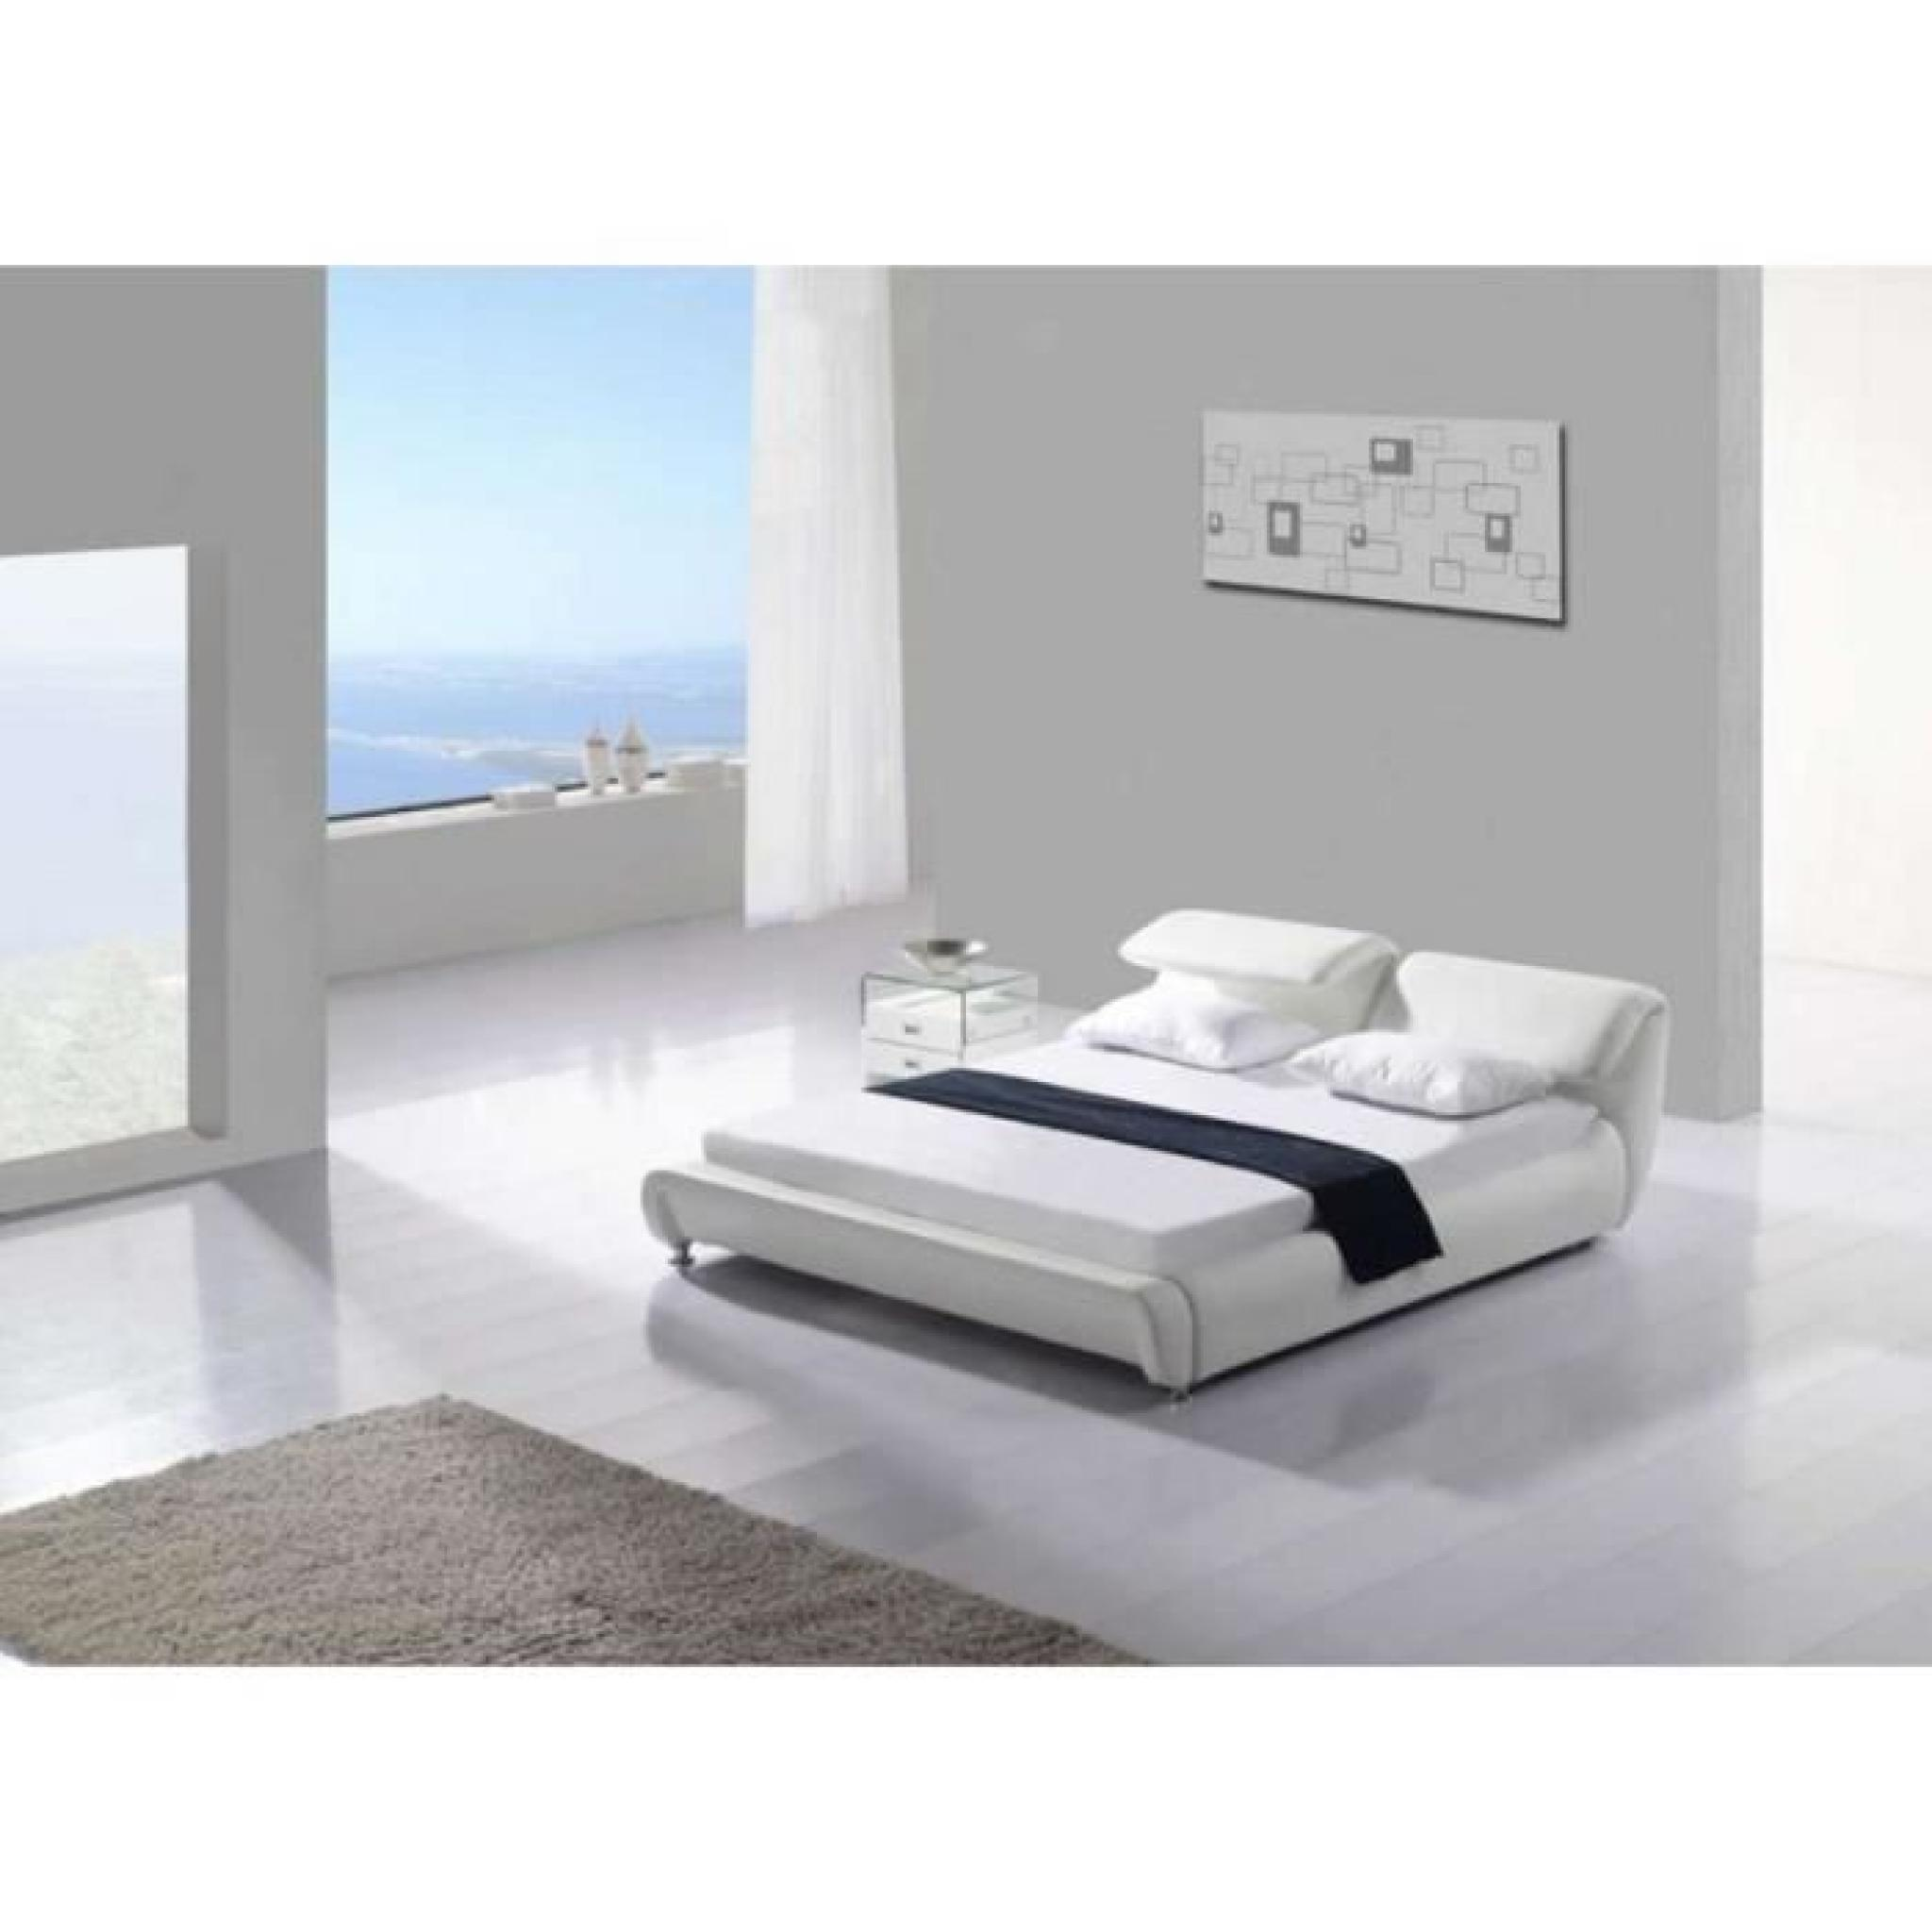 justhome tivoli blanc lit rembourr en cuir cologique taille 160 x 200 cm achat vente lit. Black Bedroom Furniture Sets. Home Design Ideas